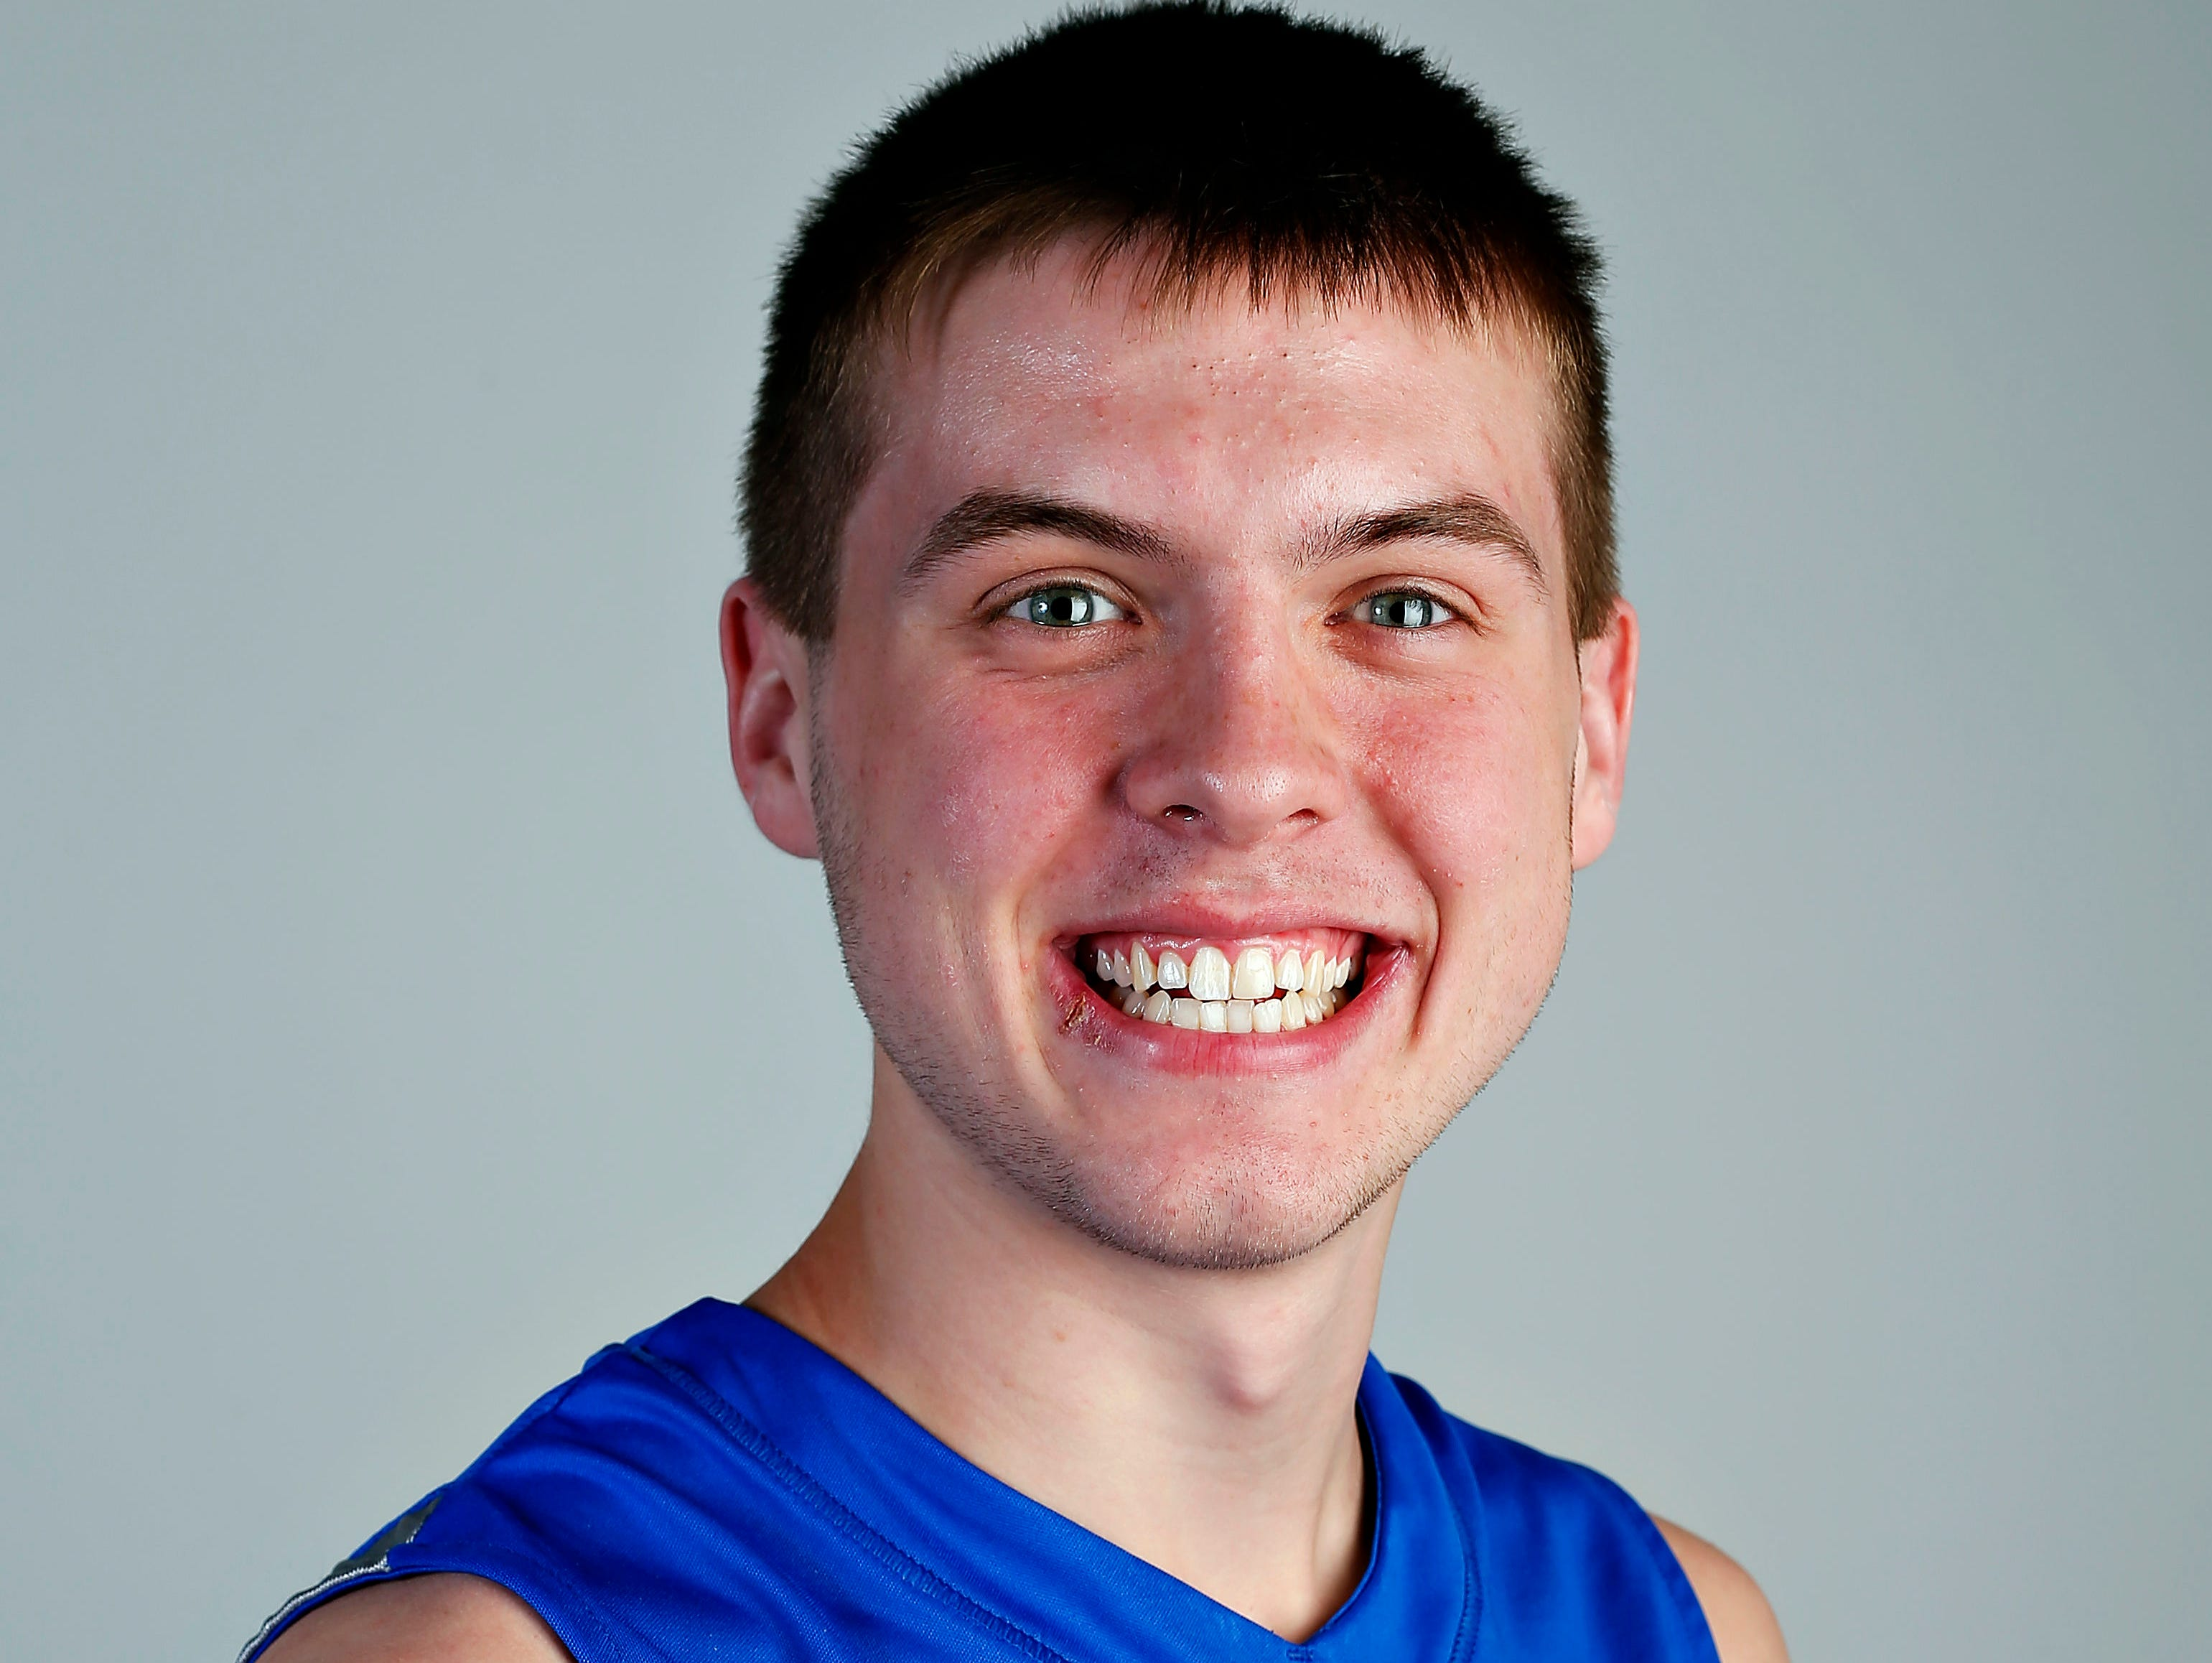 All Ozarks basketball team member Brady Petry of Hillcrest at the Springfield News-Leader portrait studio in Springfield, Mo. on April 29, 2015.